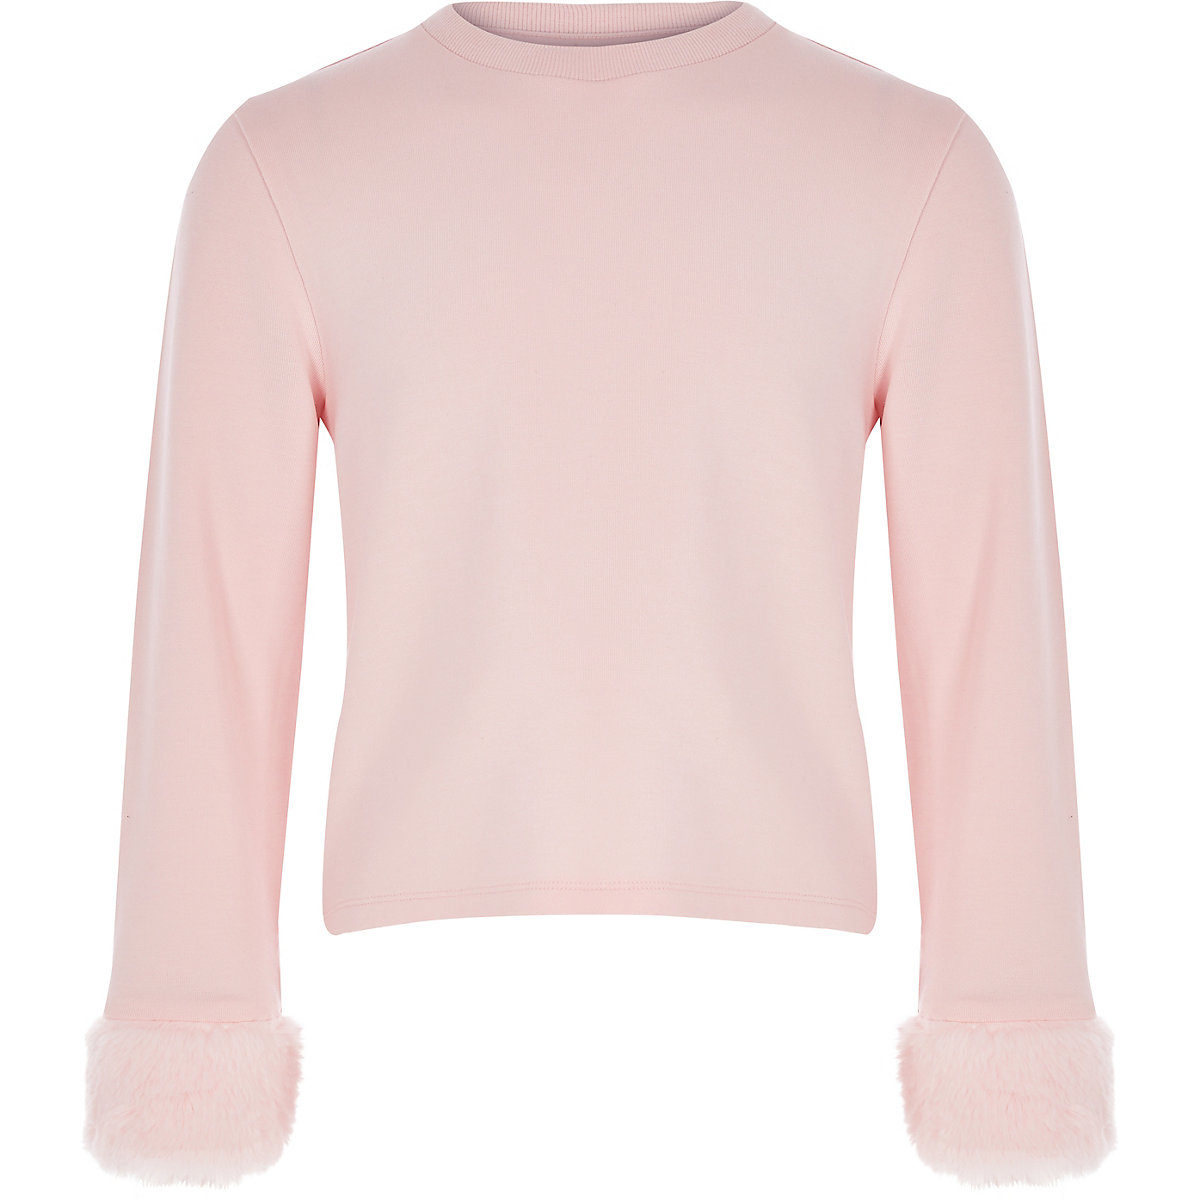 Girls light pink faux fur cuff top